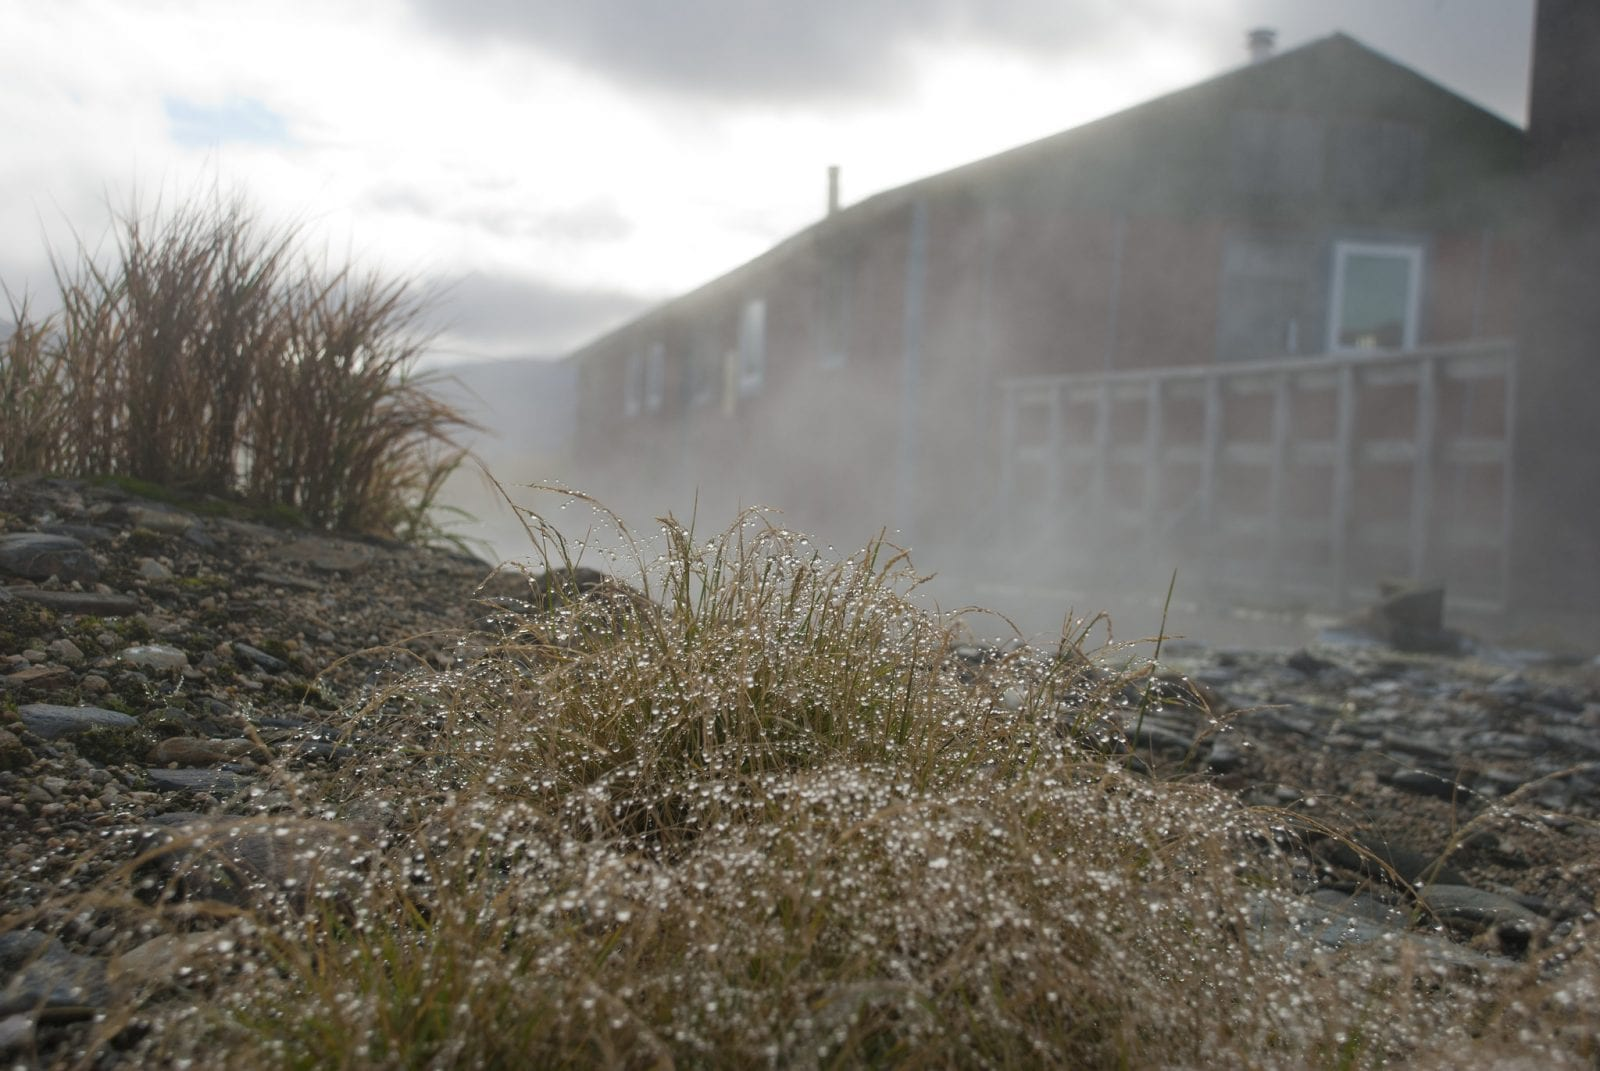 Image of droplet covered gross in front of the steamy bunkhouse building